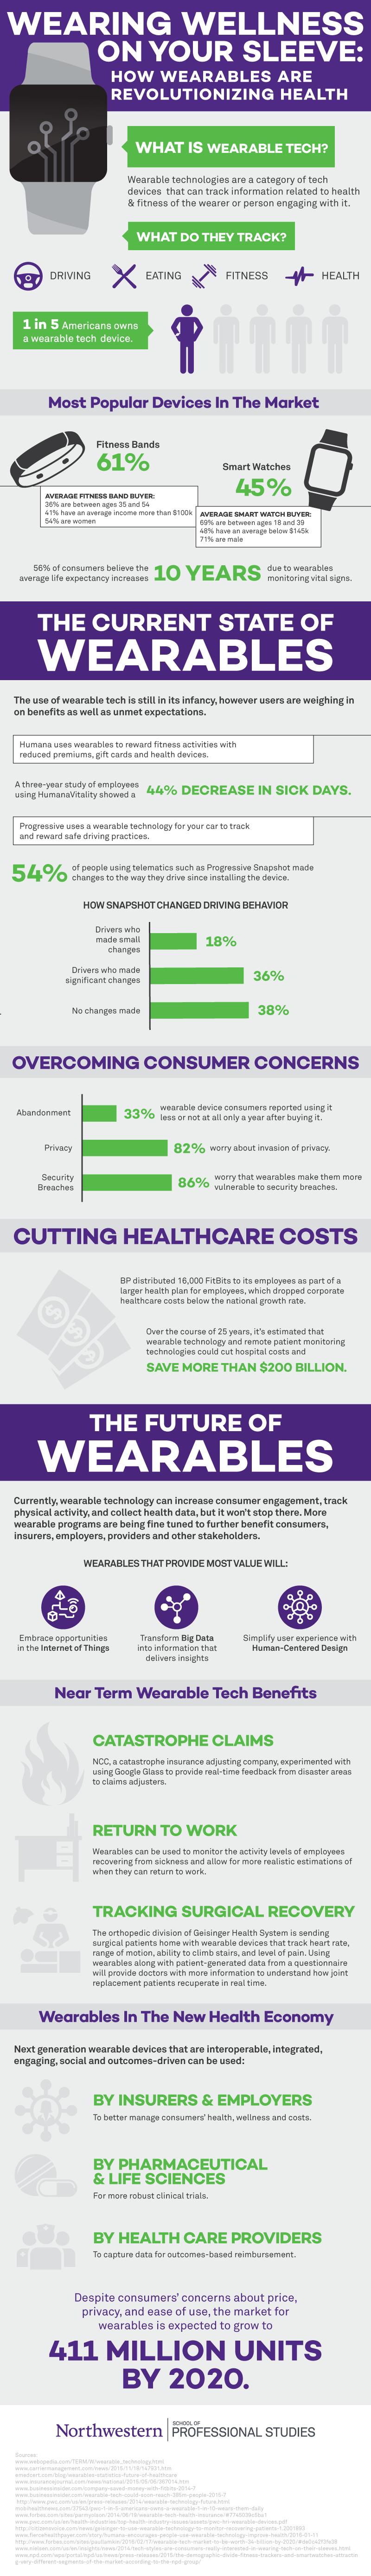 Infographic: How Wearables Are Revolutionizing Healthcare